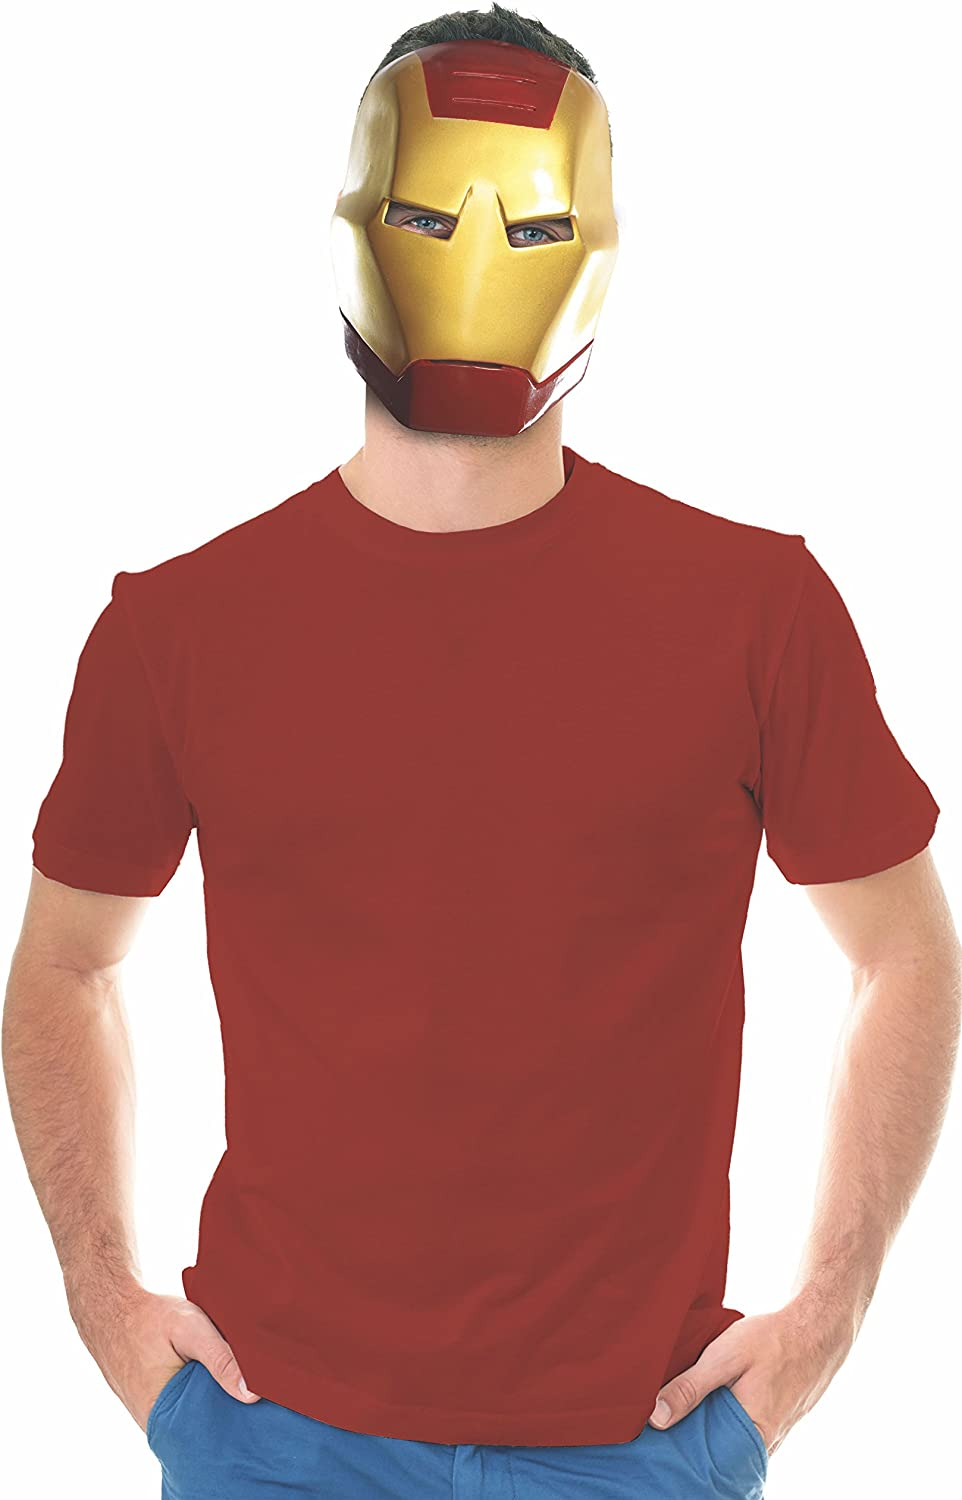 Rubie's Ben Cooper Iron Man Adult Mask, As Shown, One Size